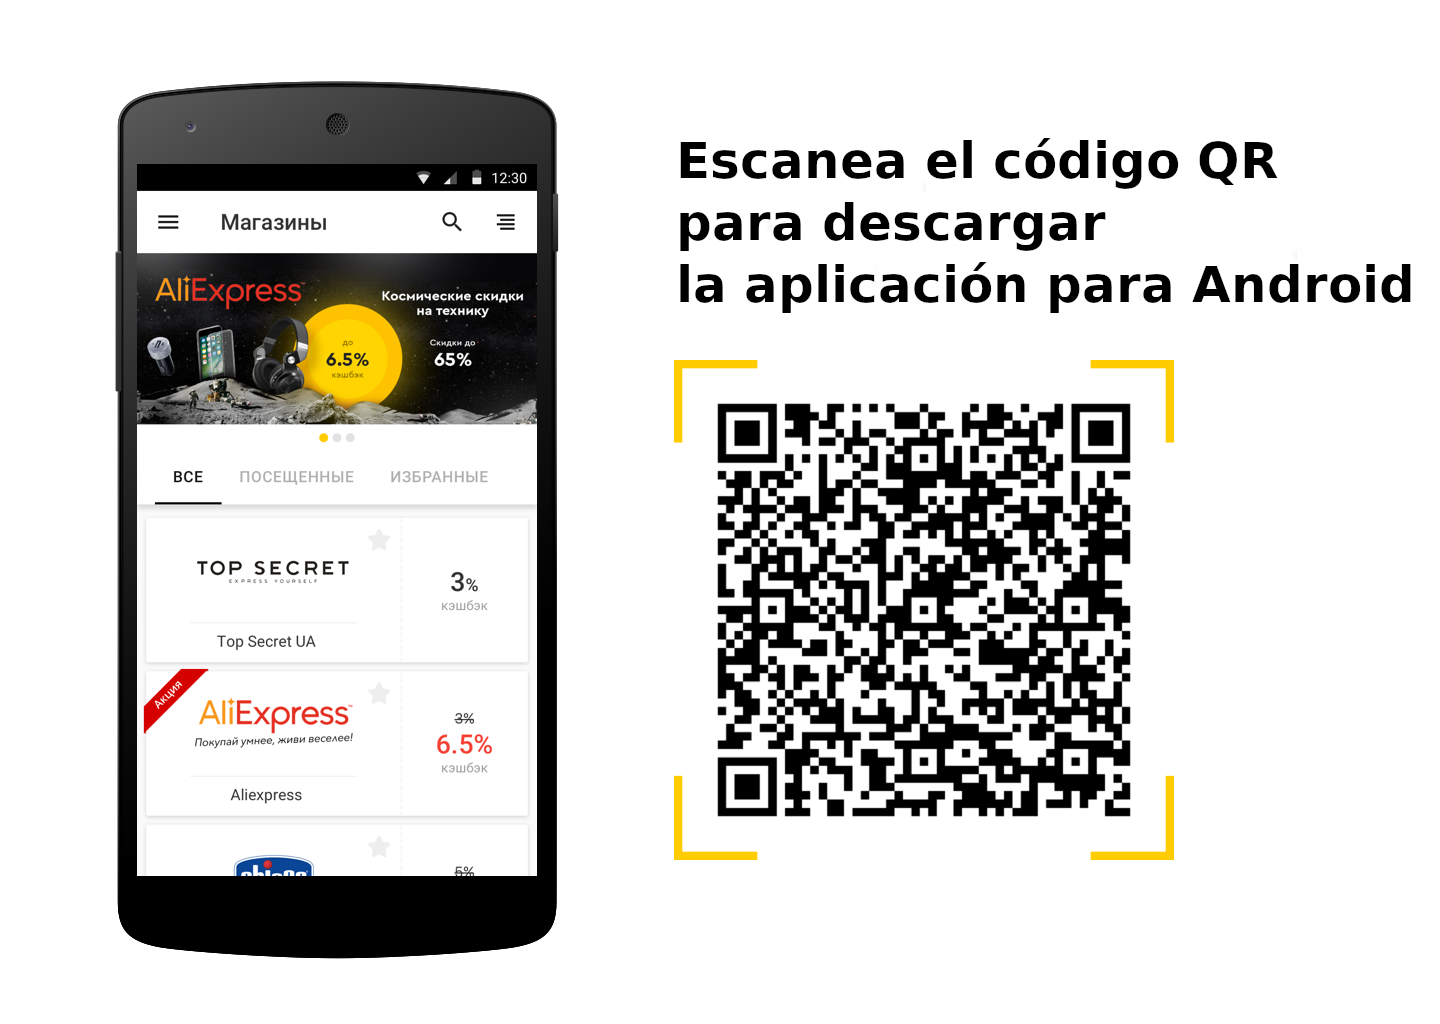 qr_code_android_es.png